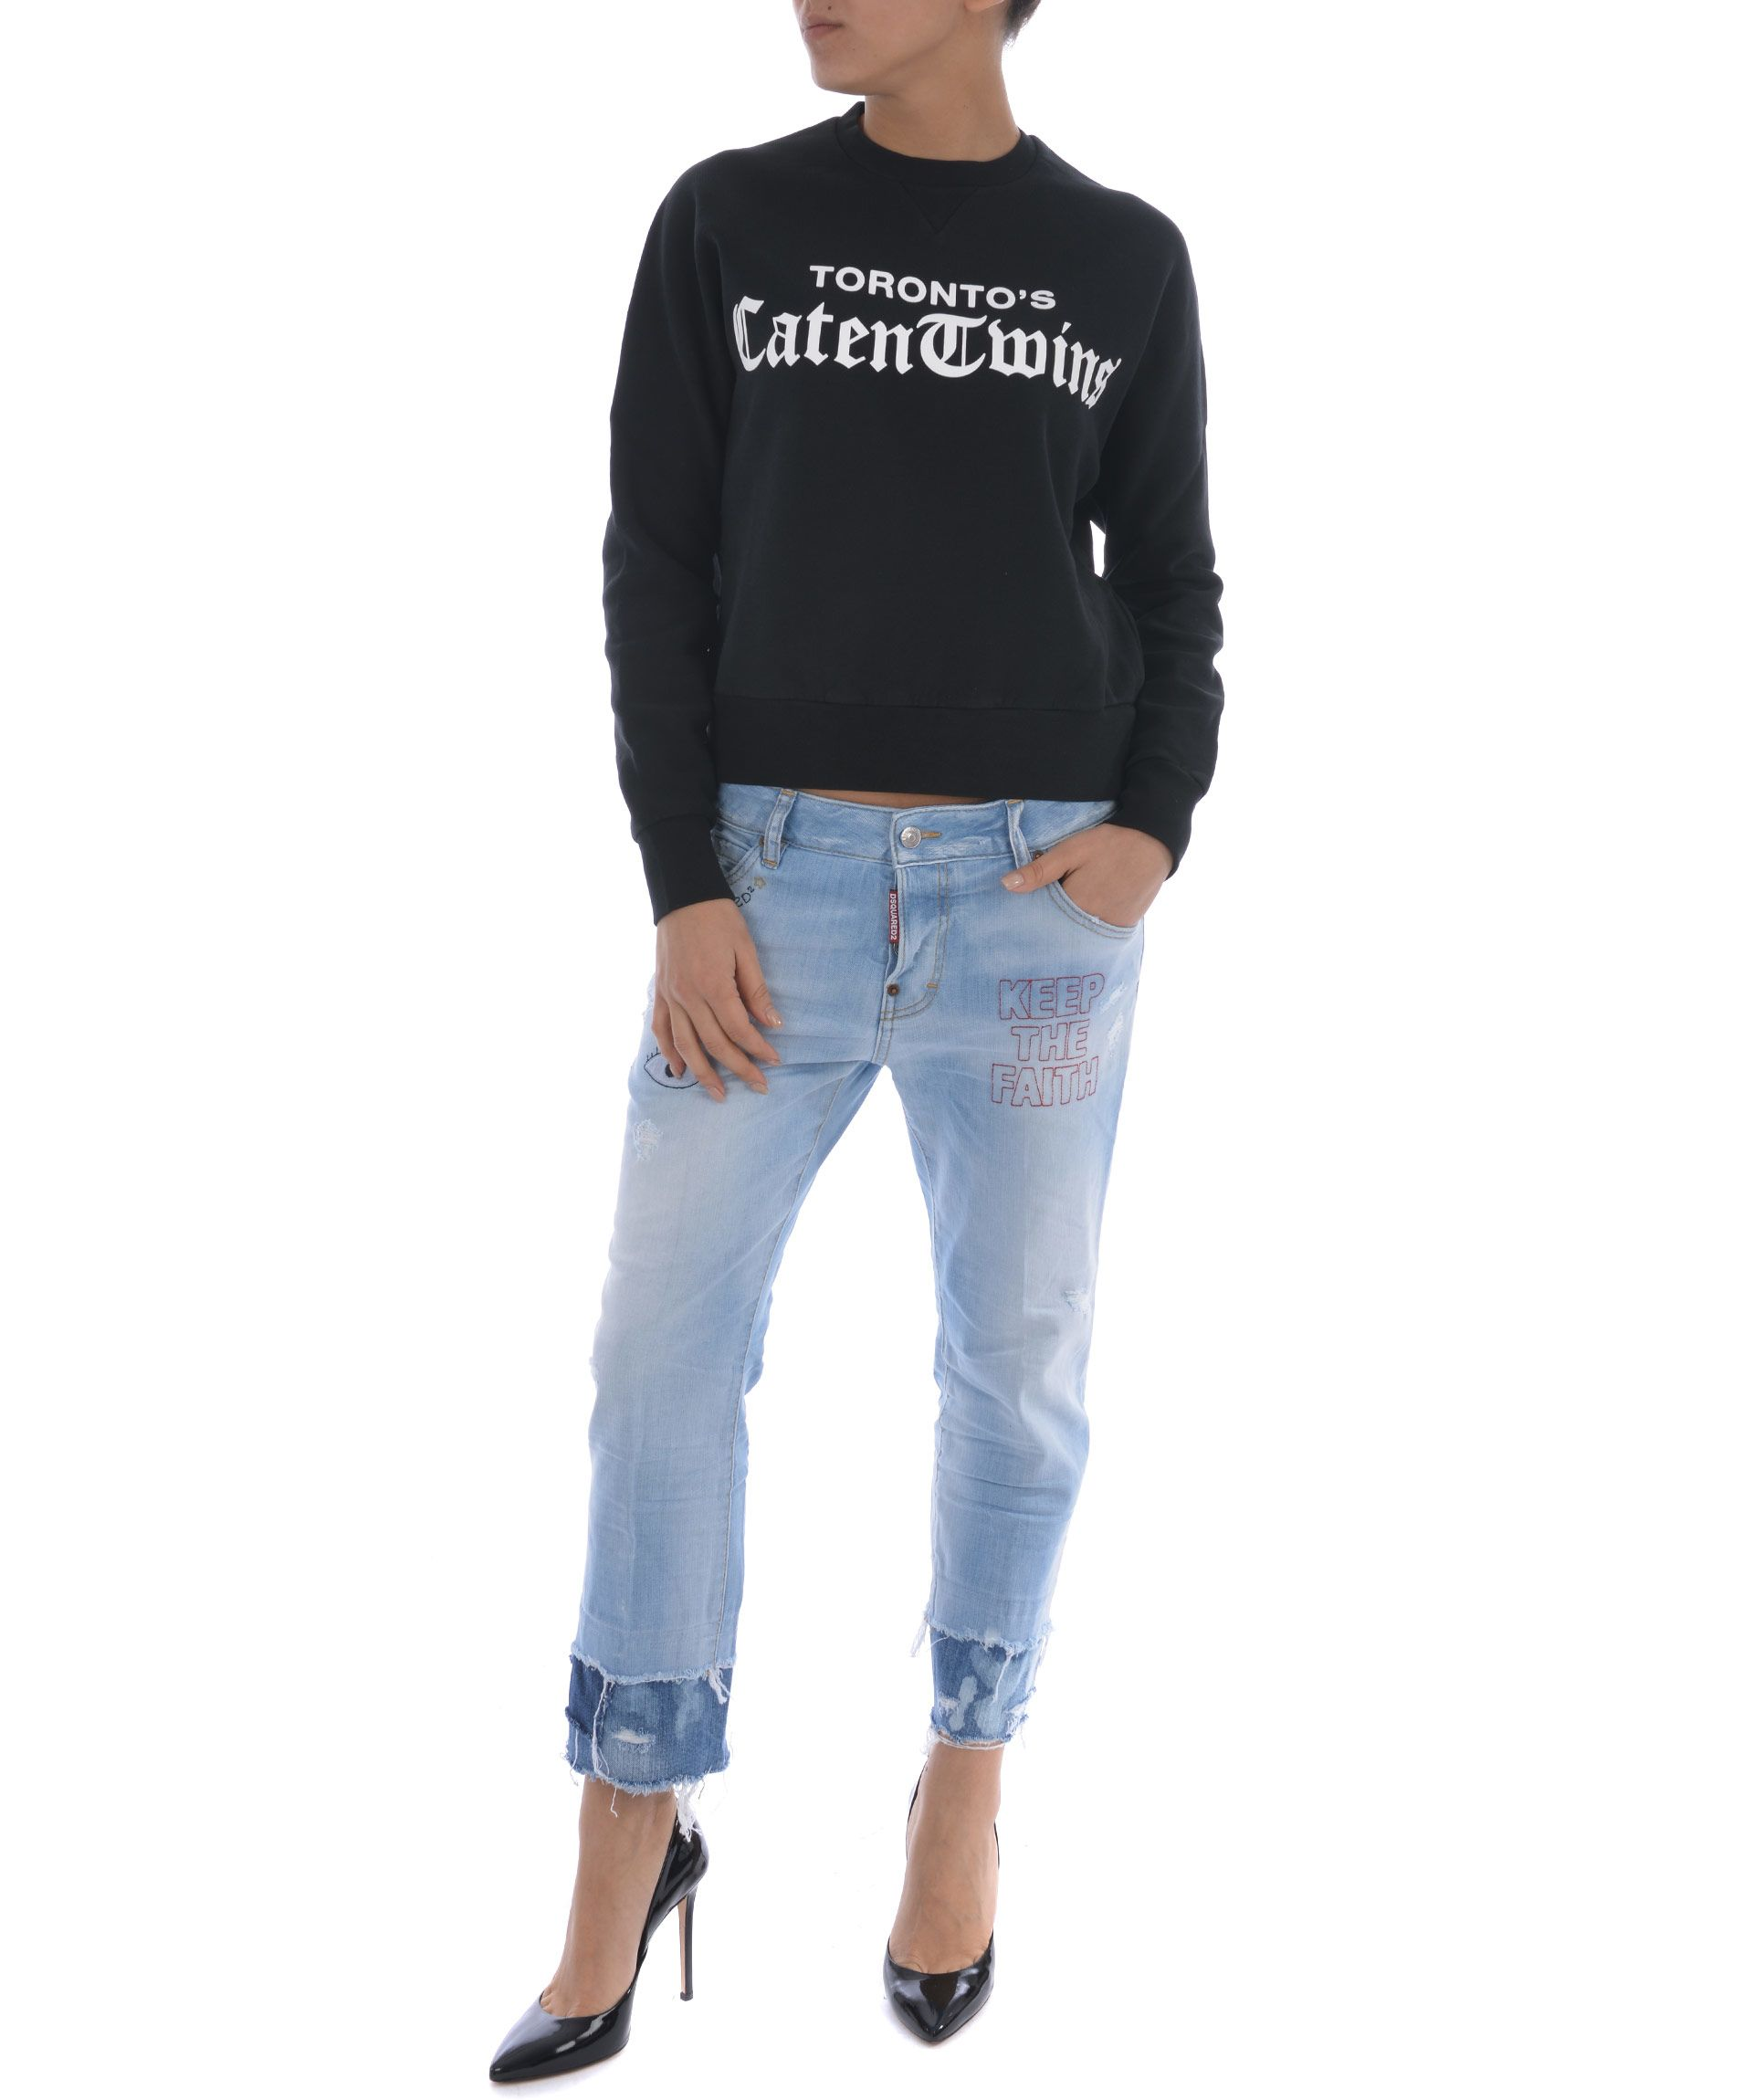 Dsquared2 Torontos Caten Twins Sweatshirt